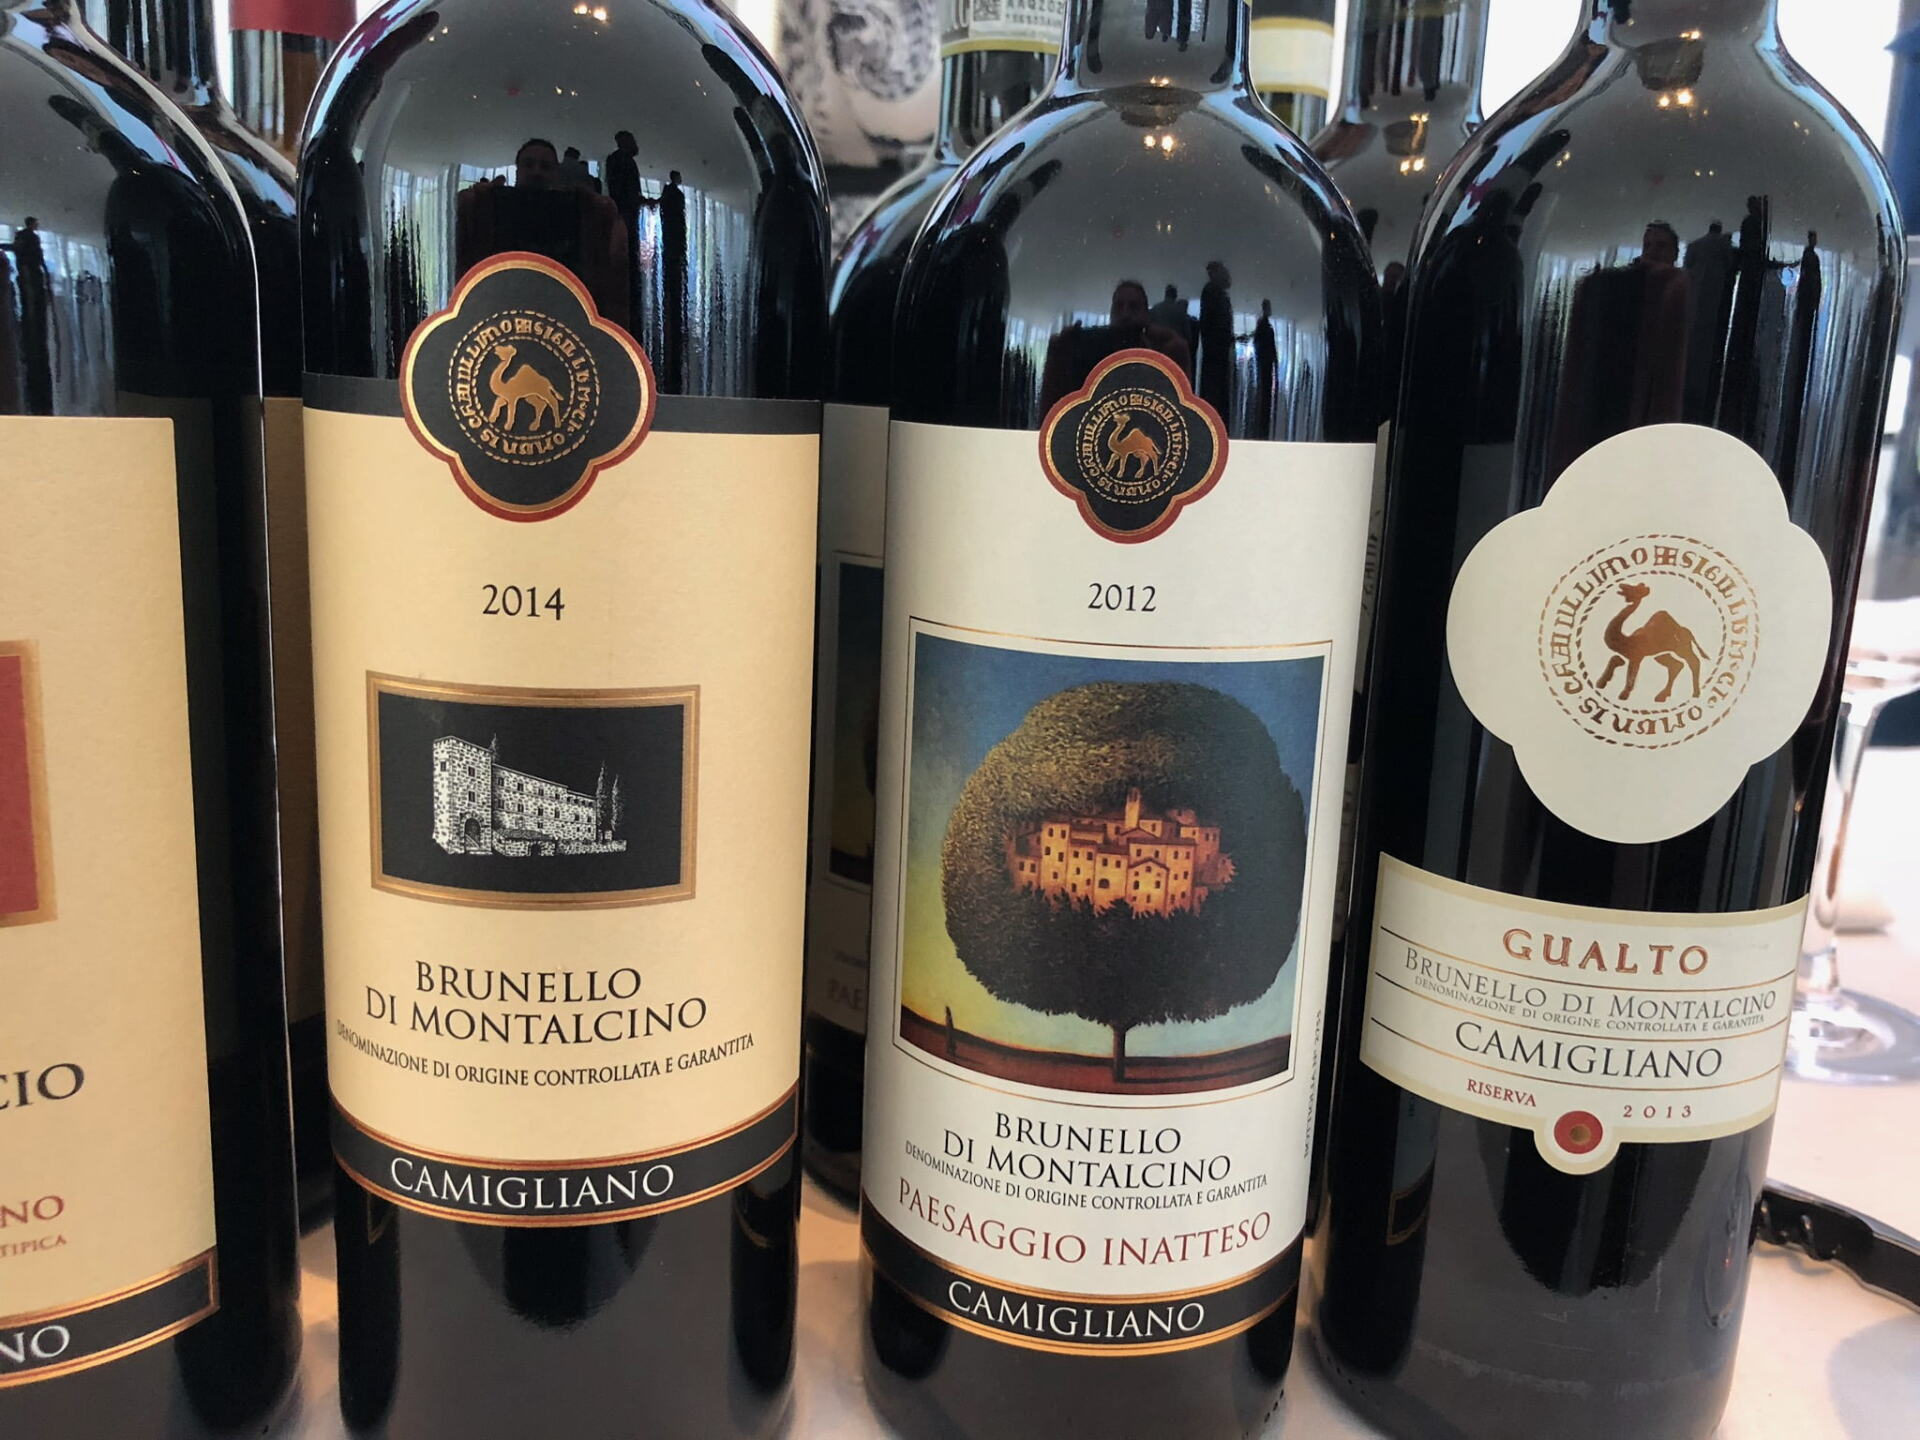 Bottles of Brunello